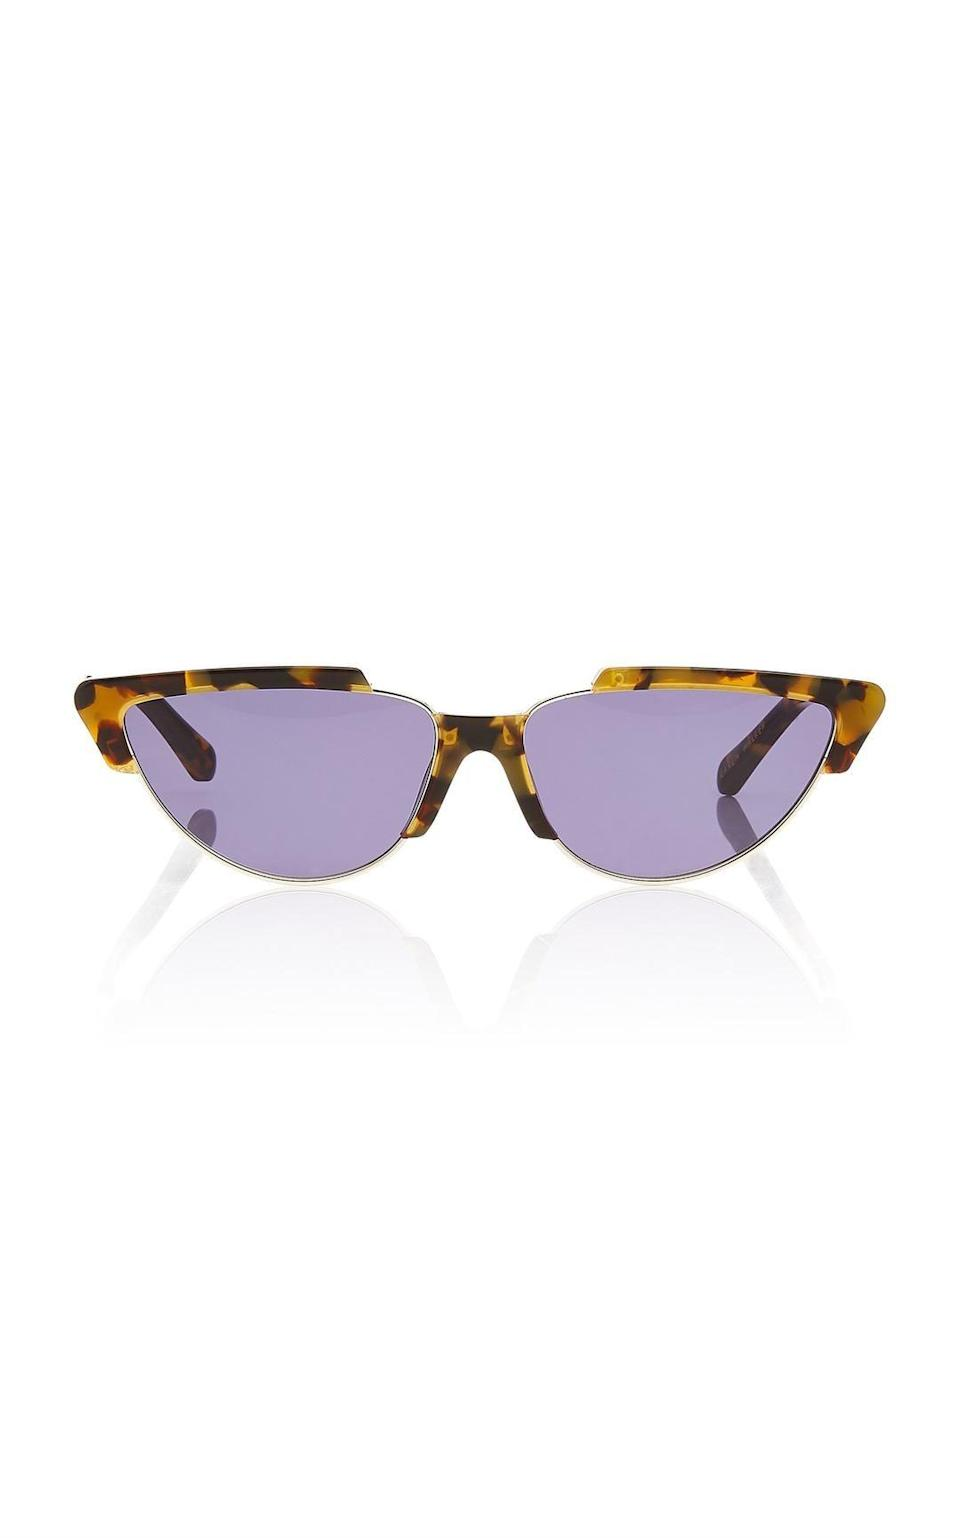 We love the cool contrast between the purple lense and the tortoise frame.